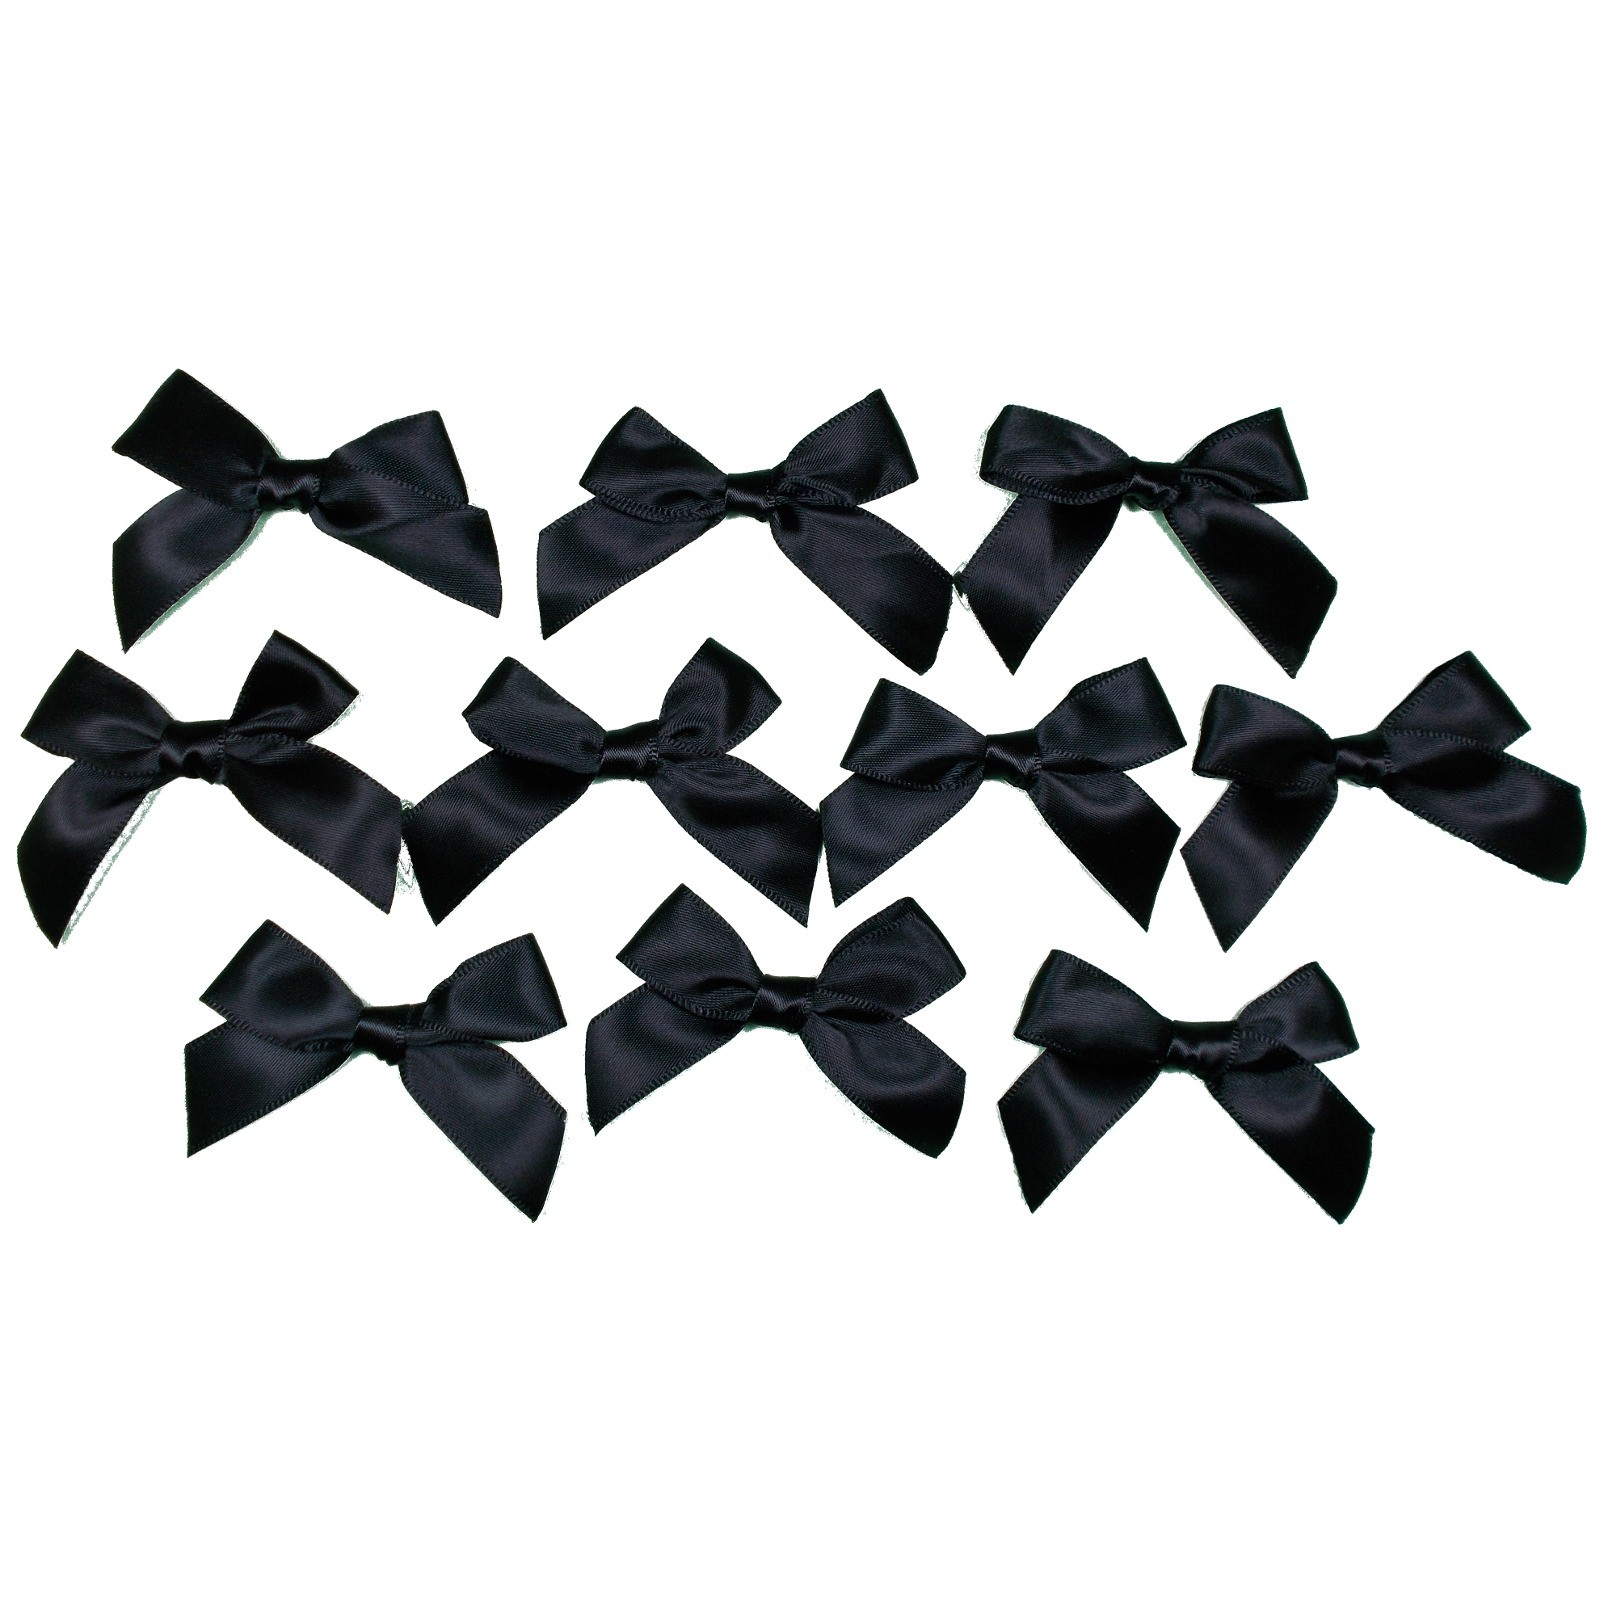 Satin Ribbon Bows approx 5.5cm wide Black Pack of 10